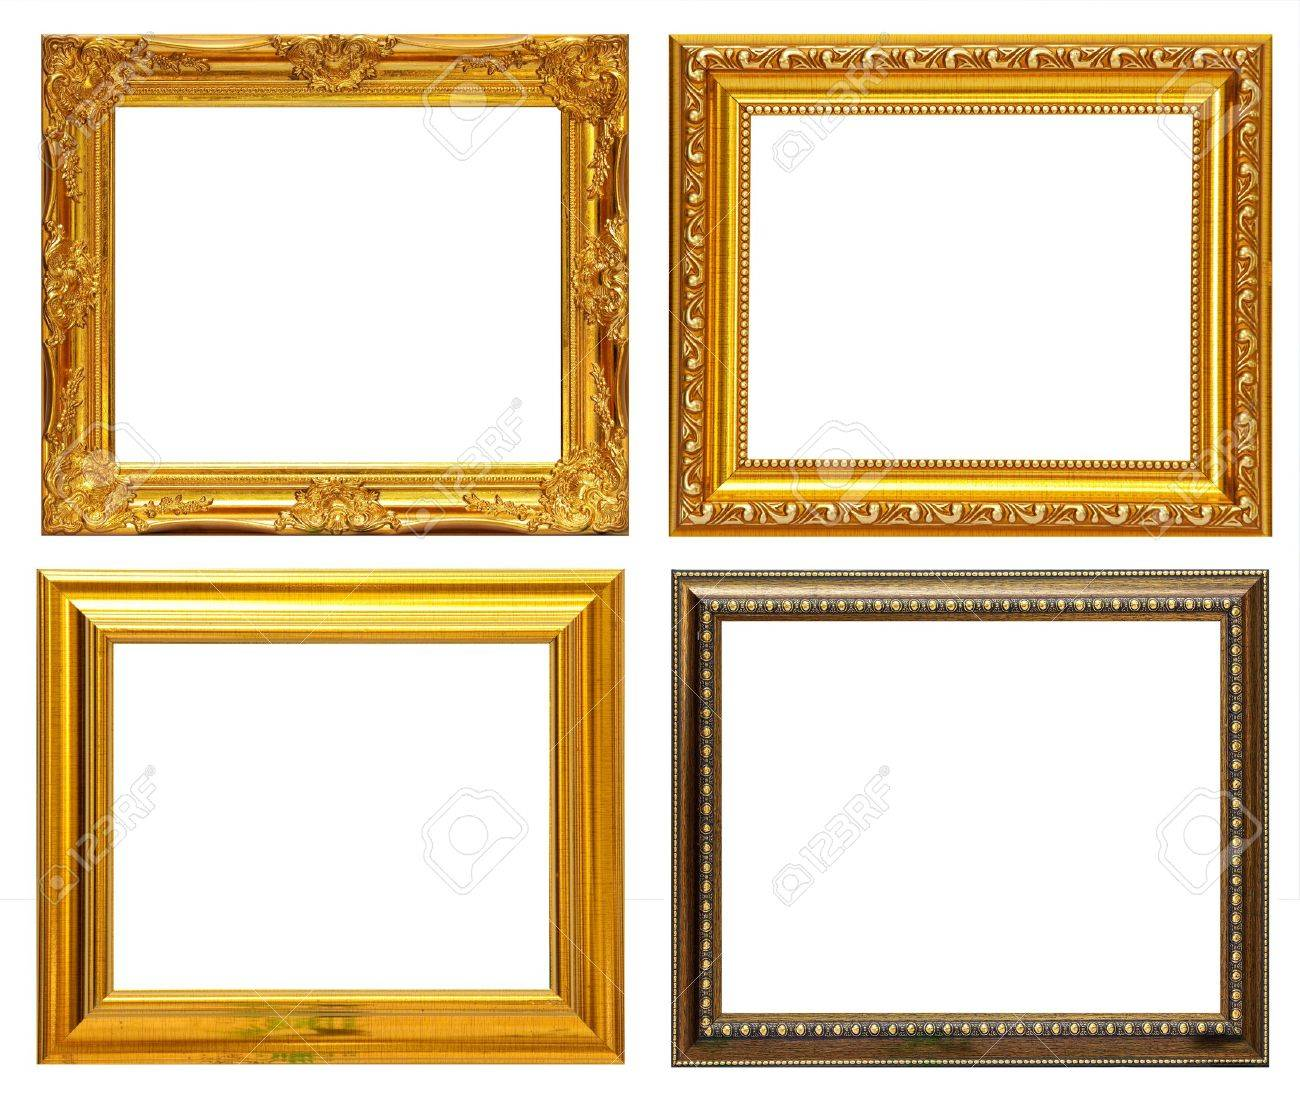 gold frame collection on white background stock photo 9407198